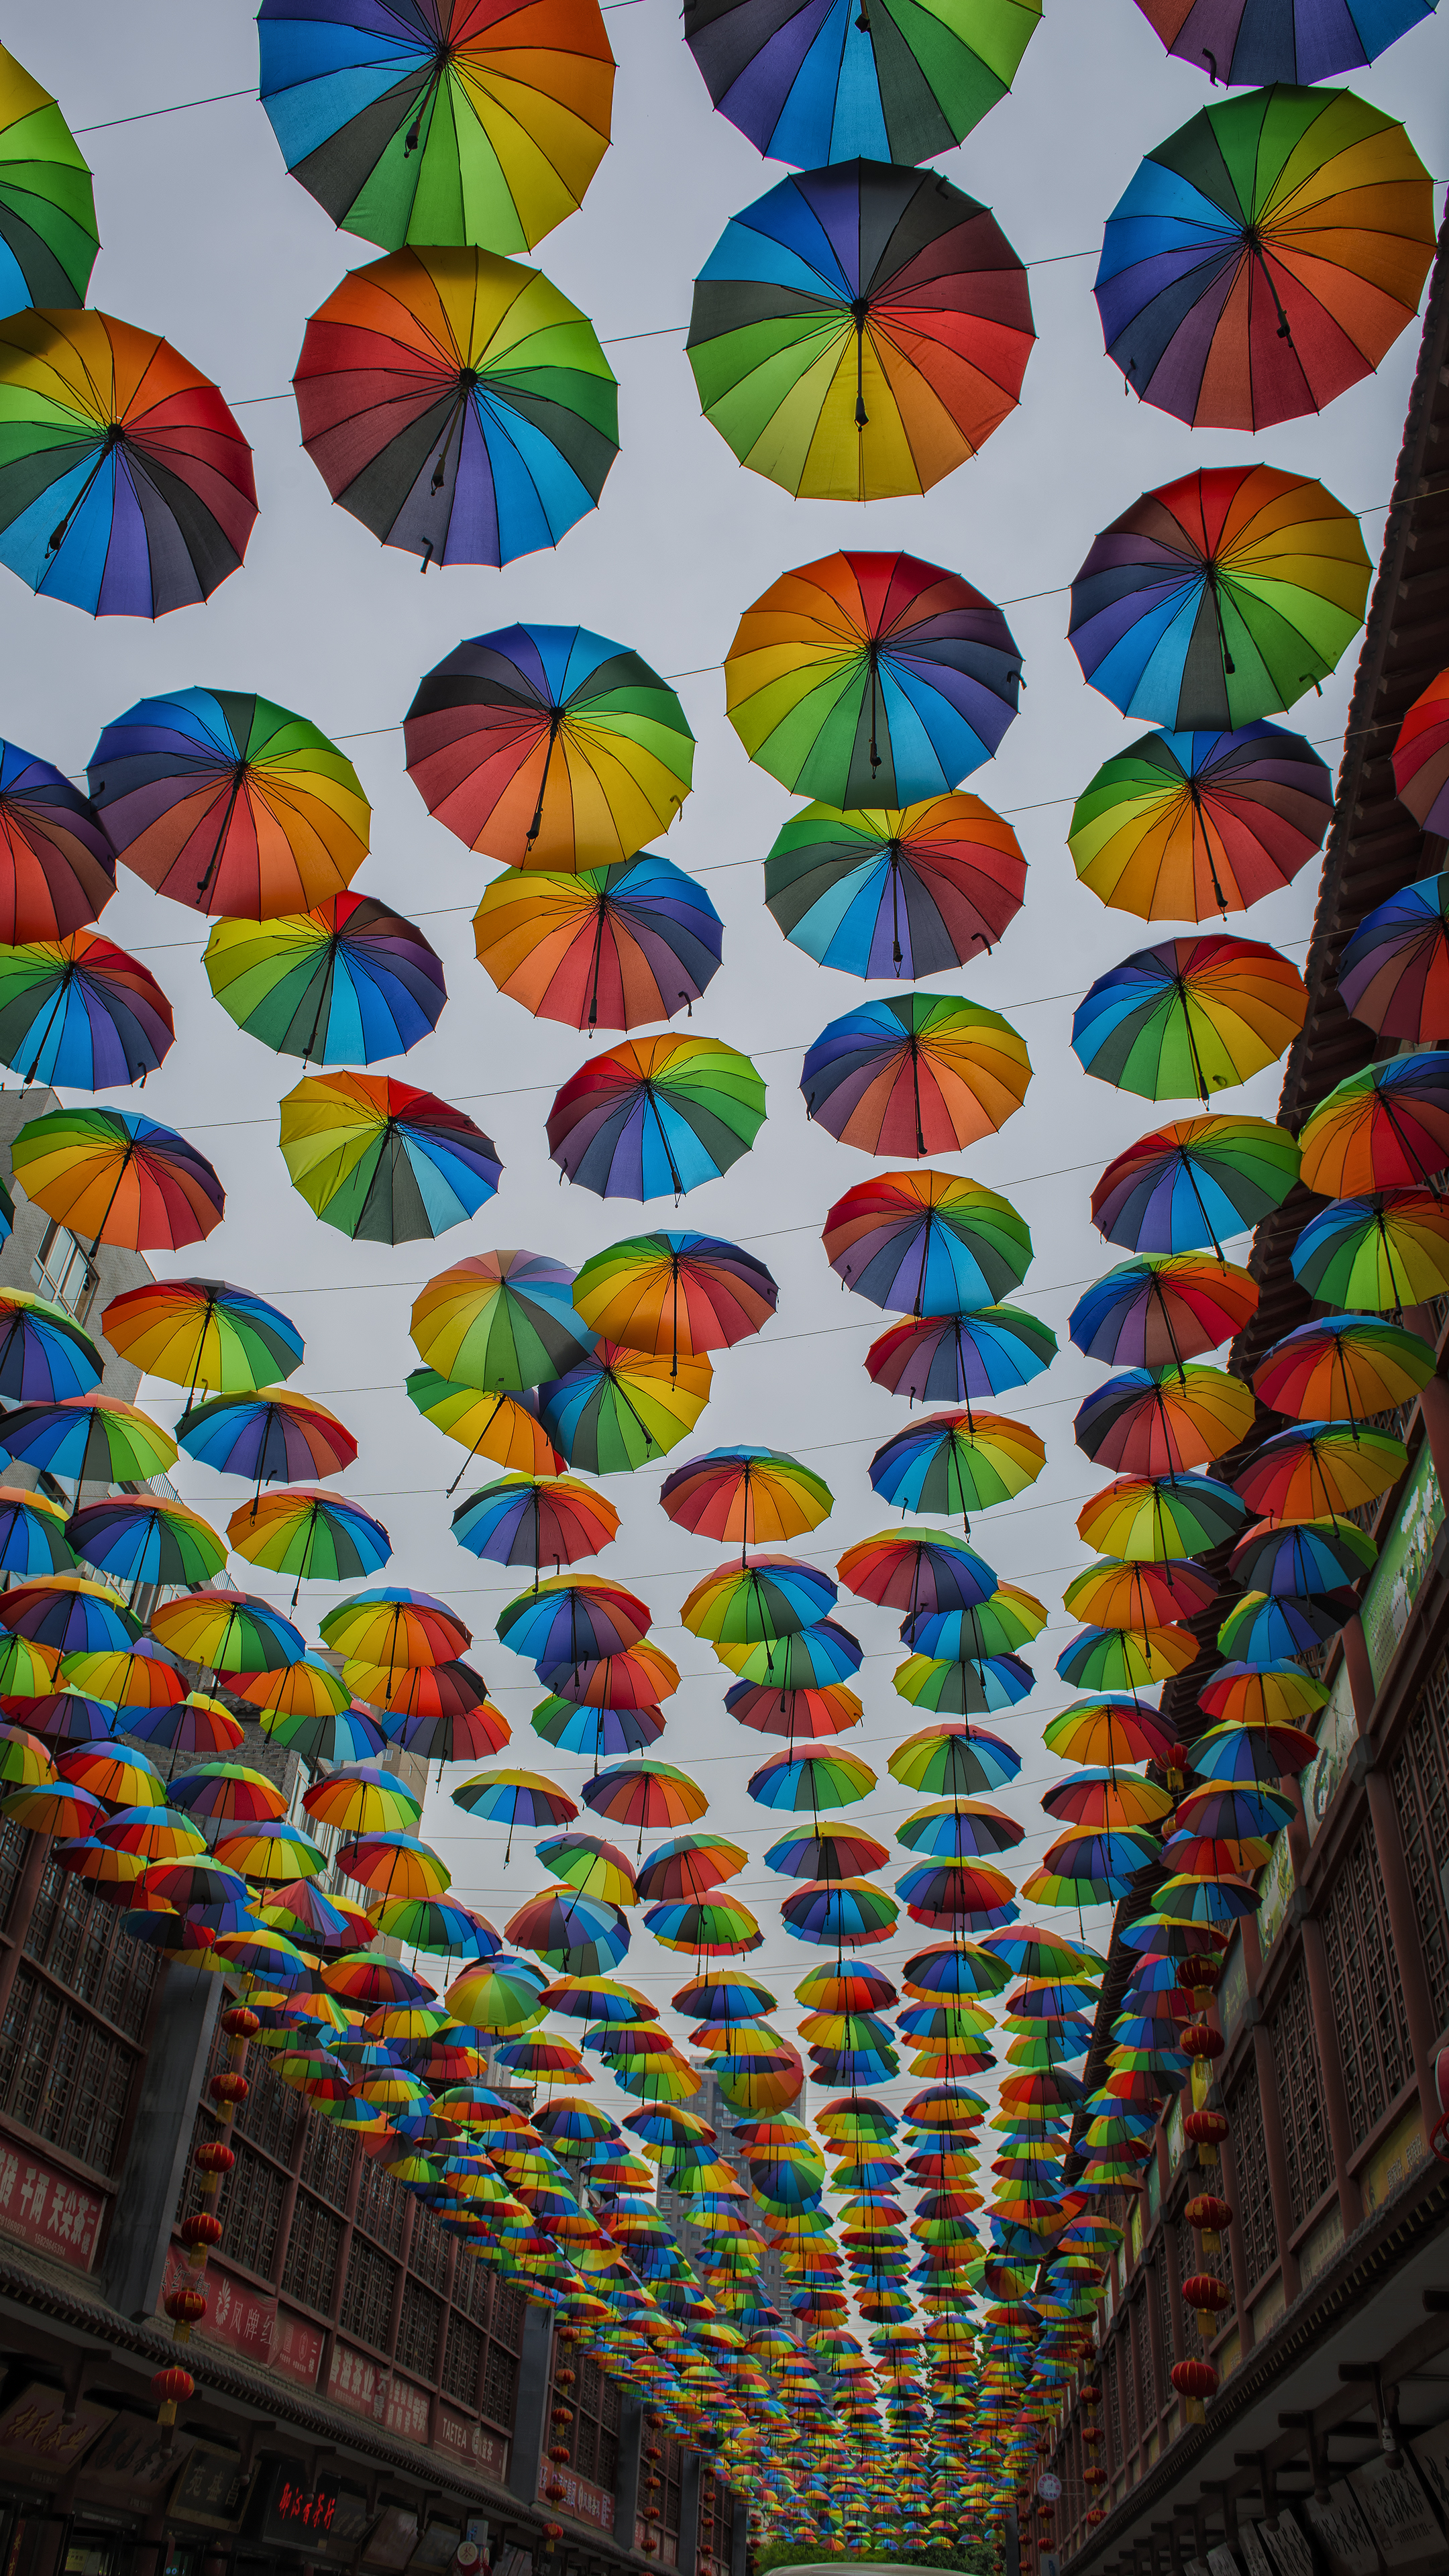 Umbrellas in Xian